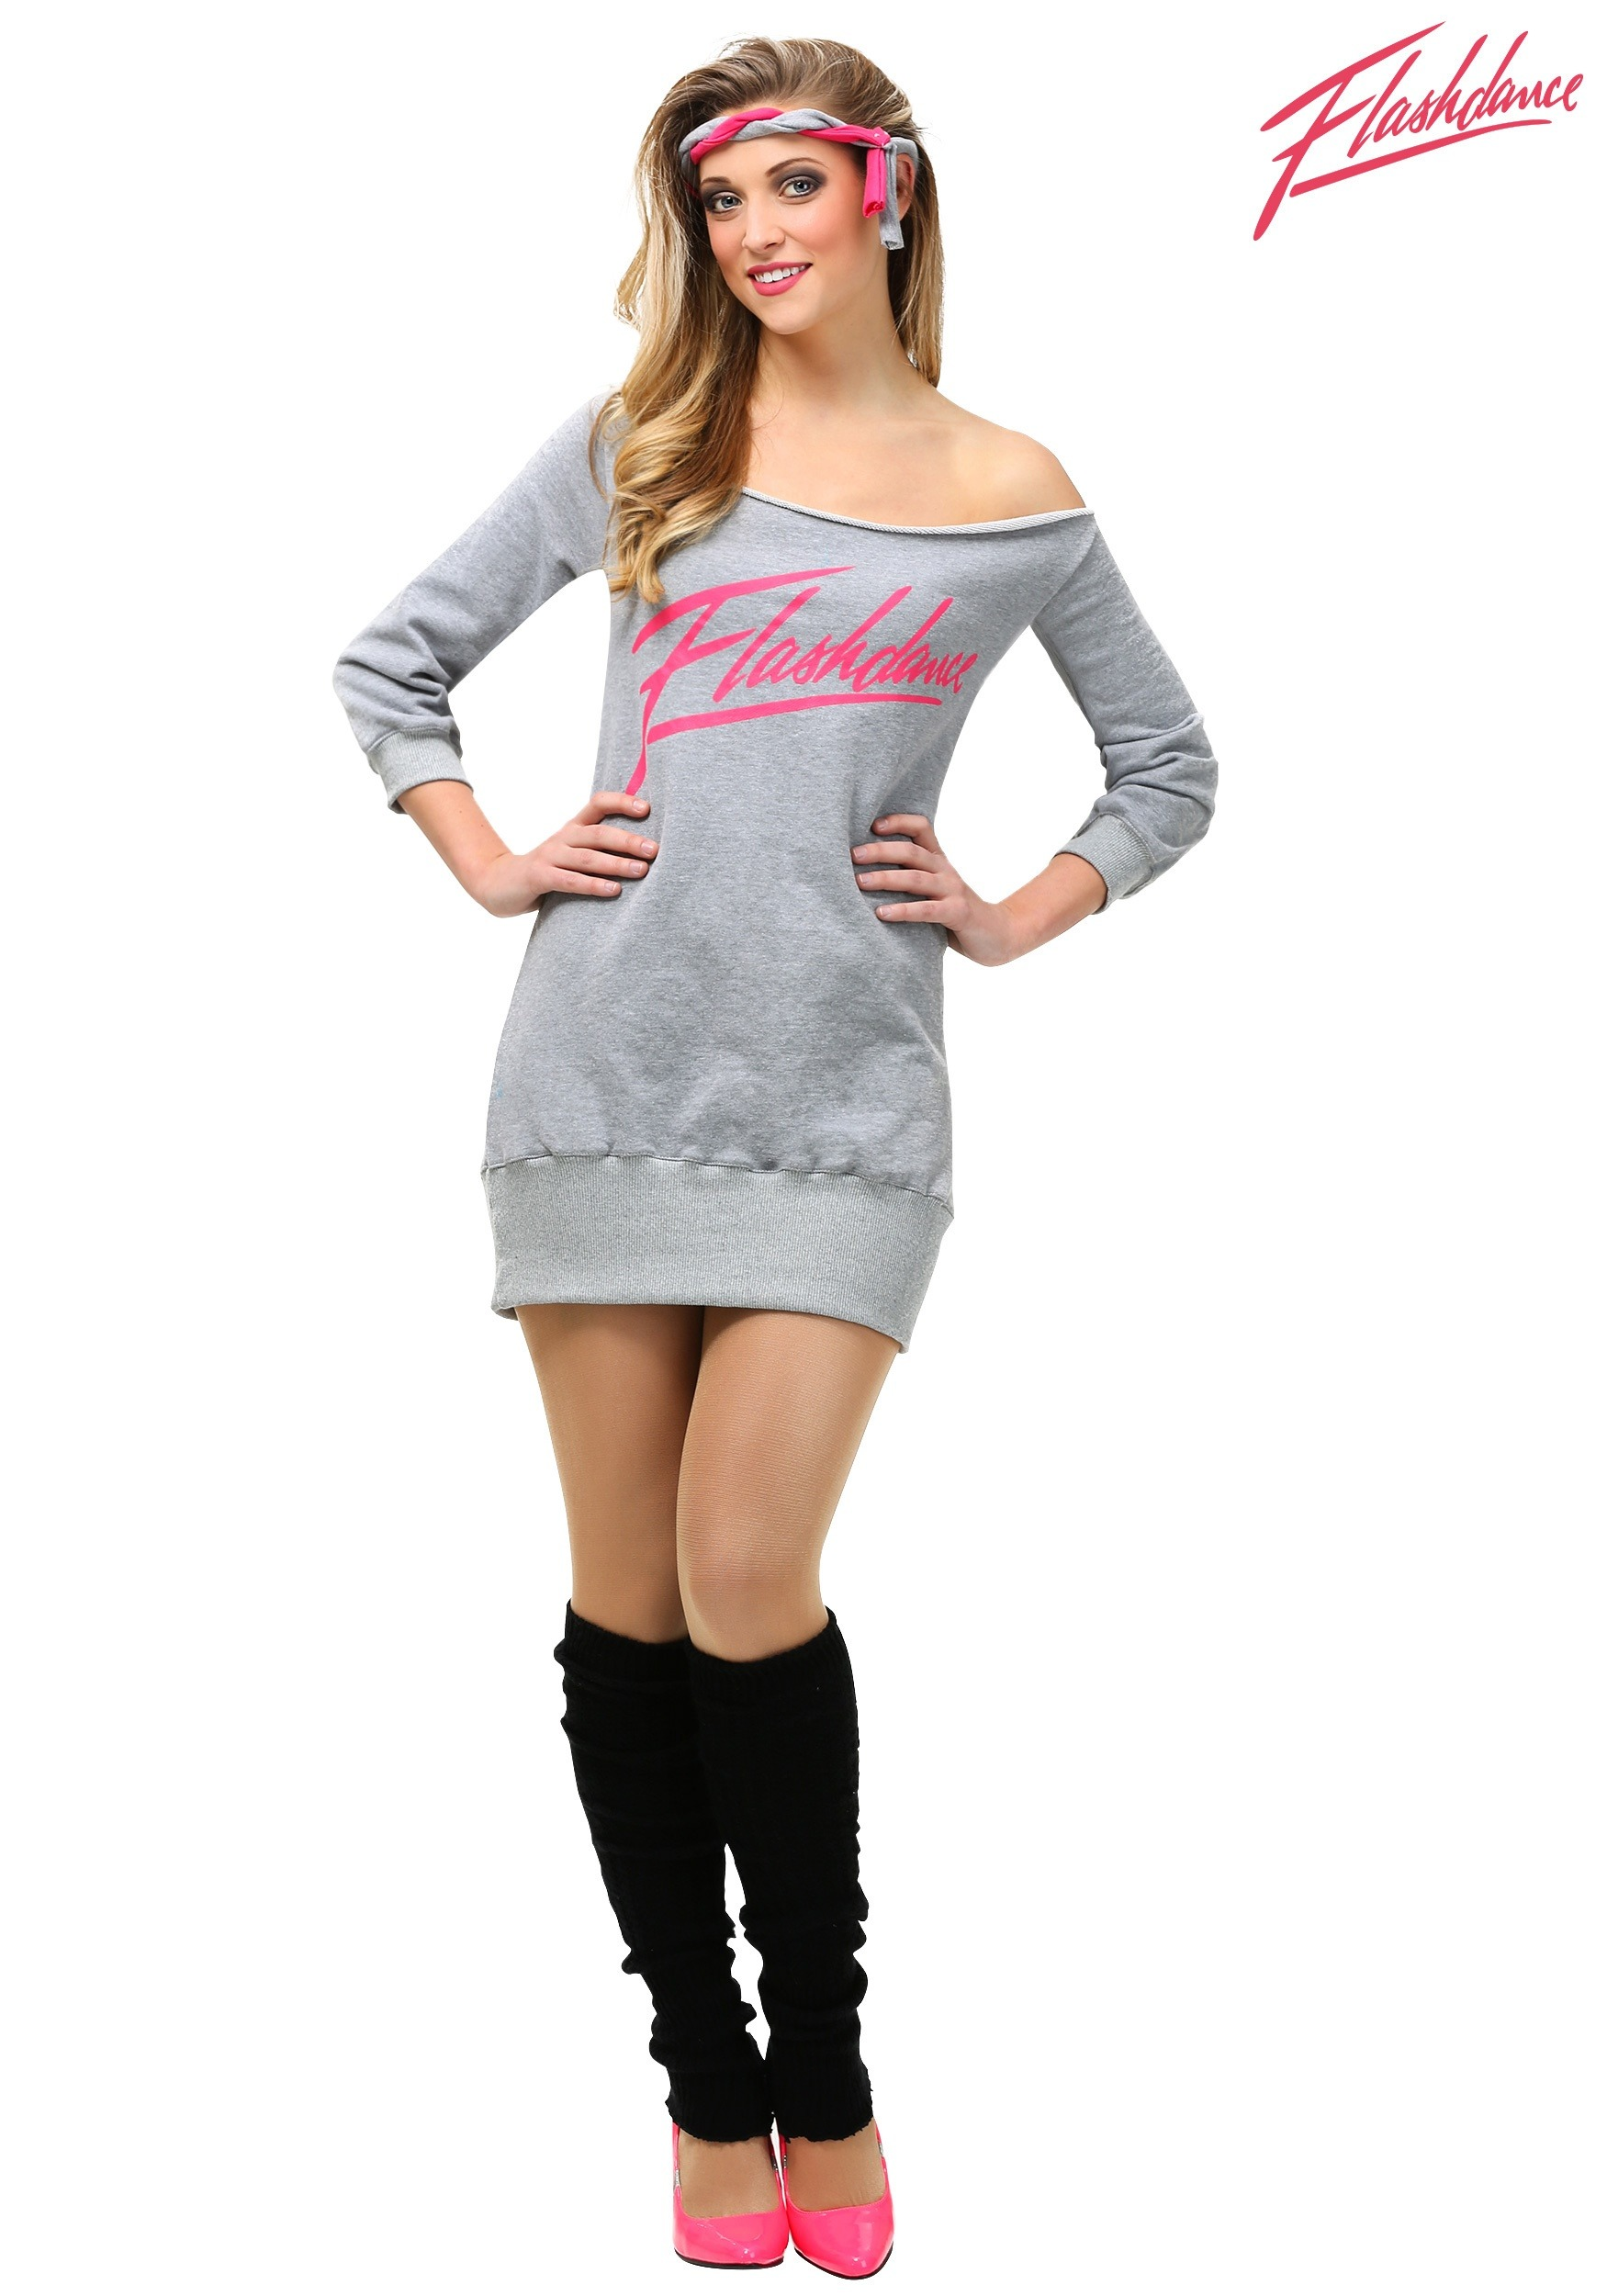 Flashdance women 39 s plus size costume for Cute halloween costumes for 12 year olds